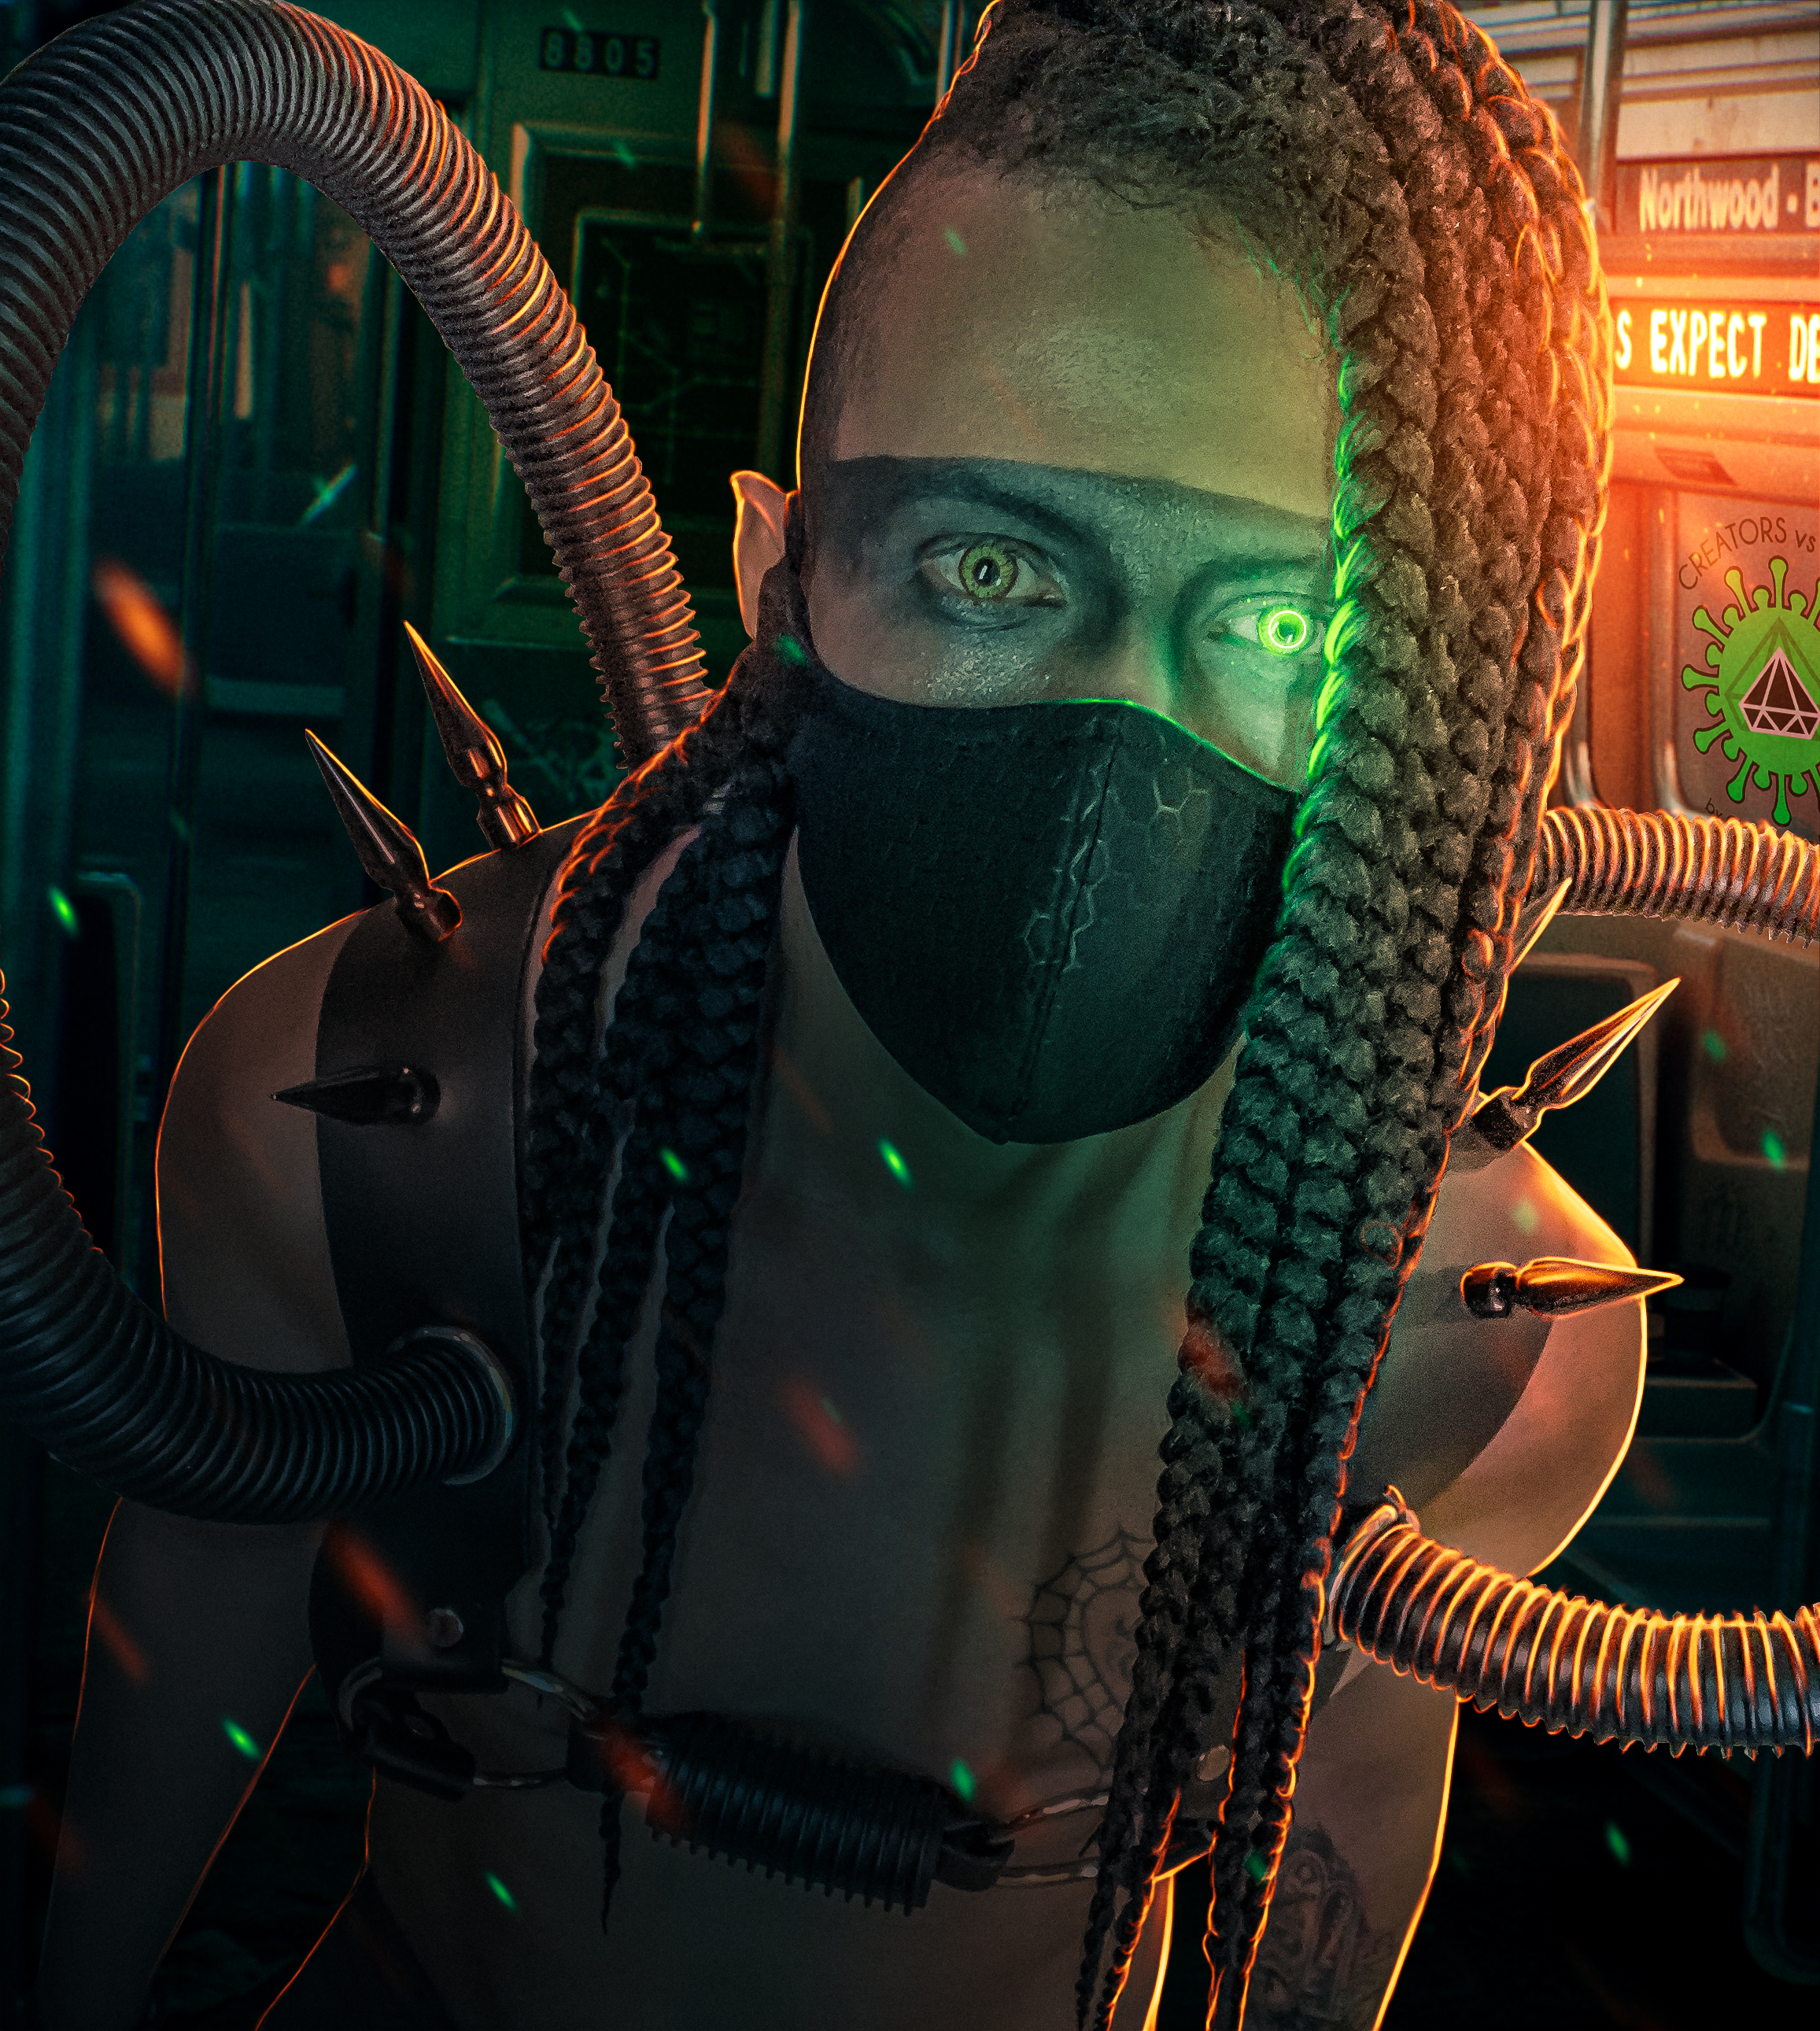 Man with braids and a black mask